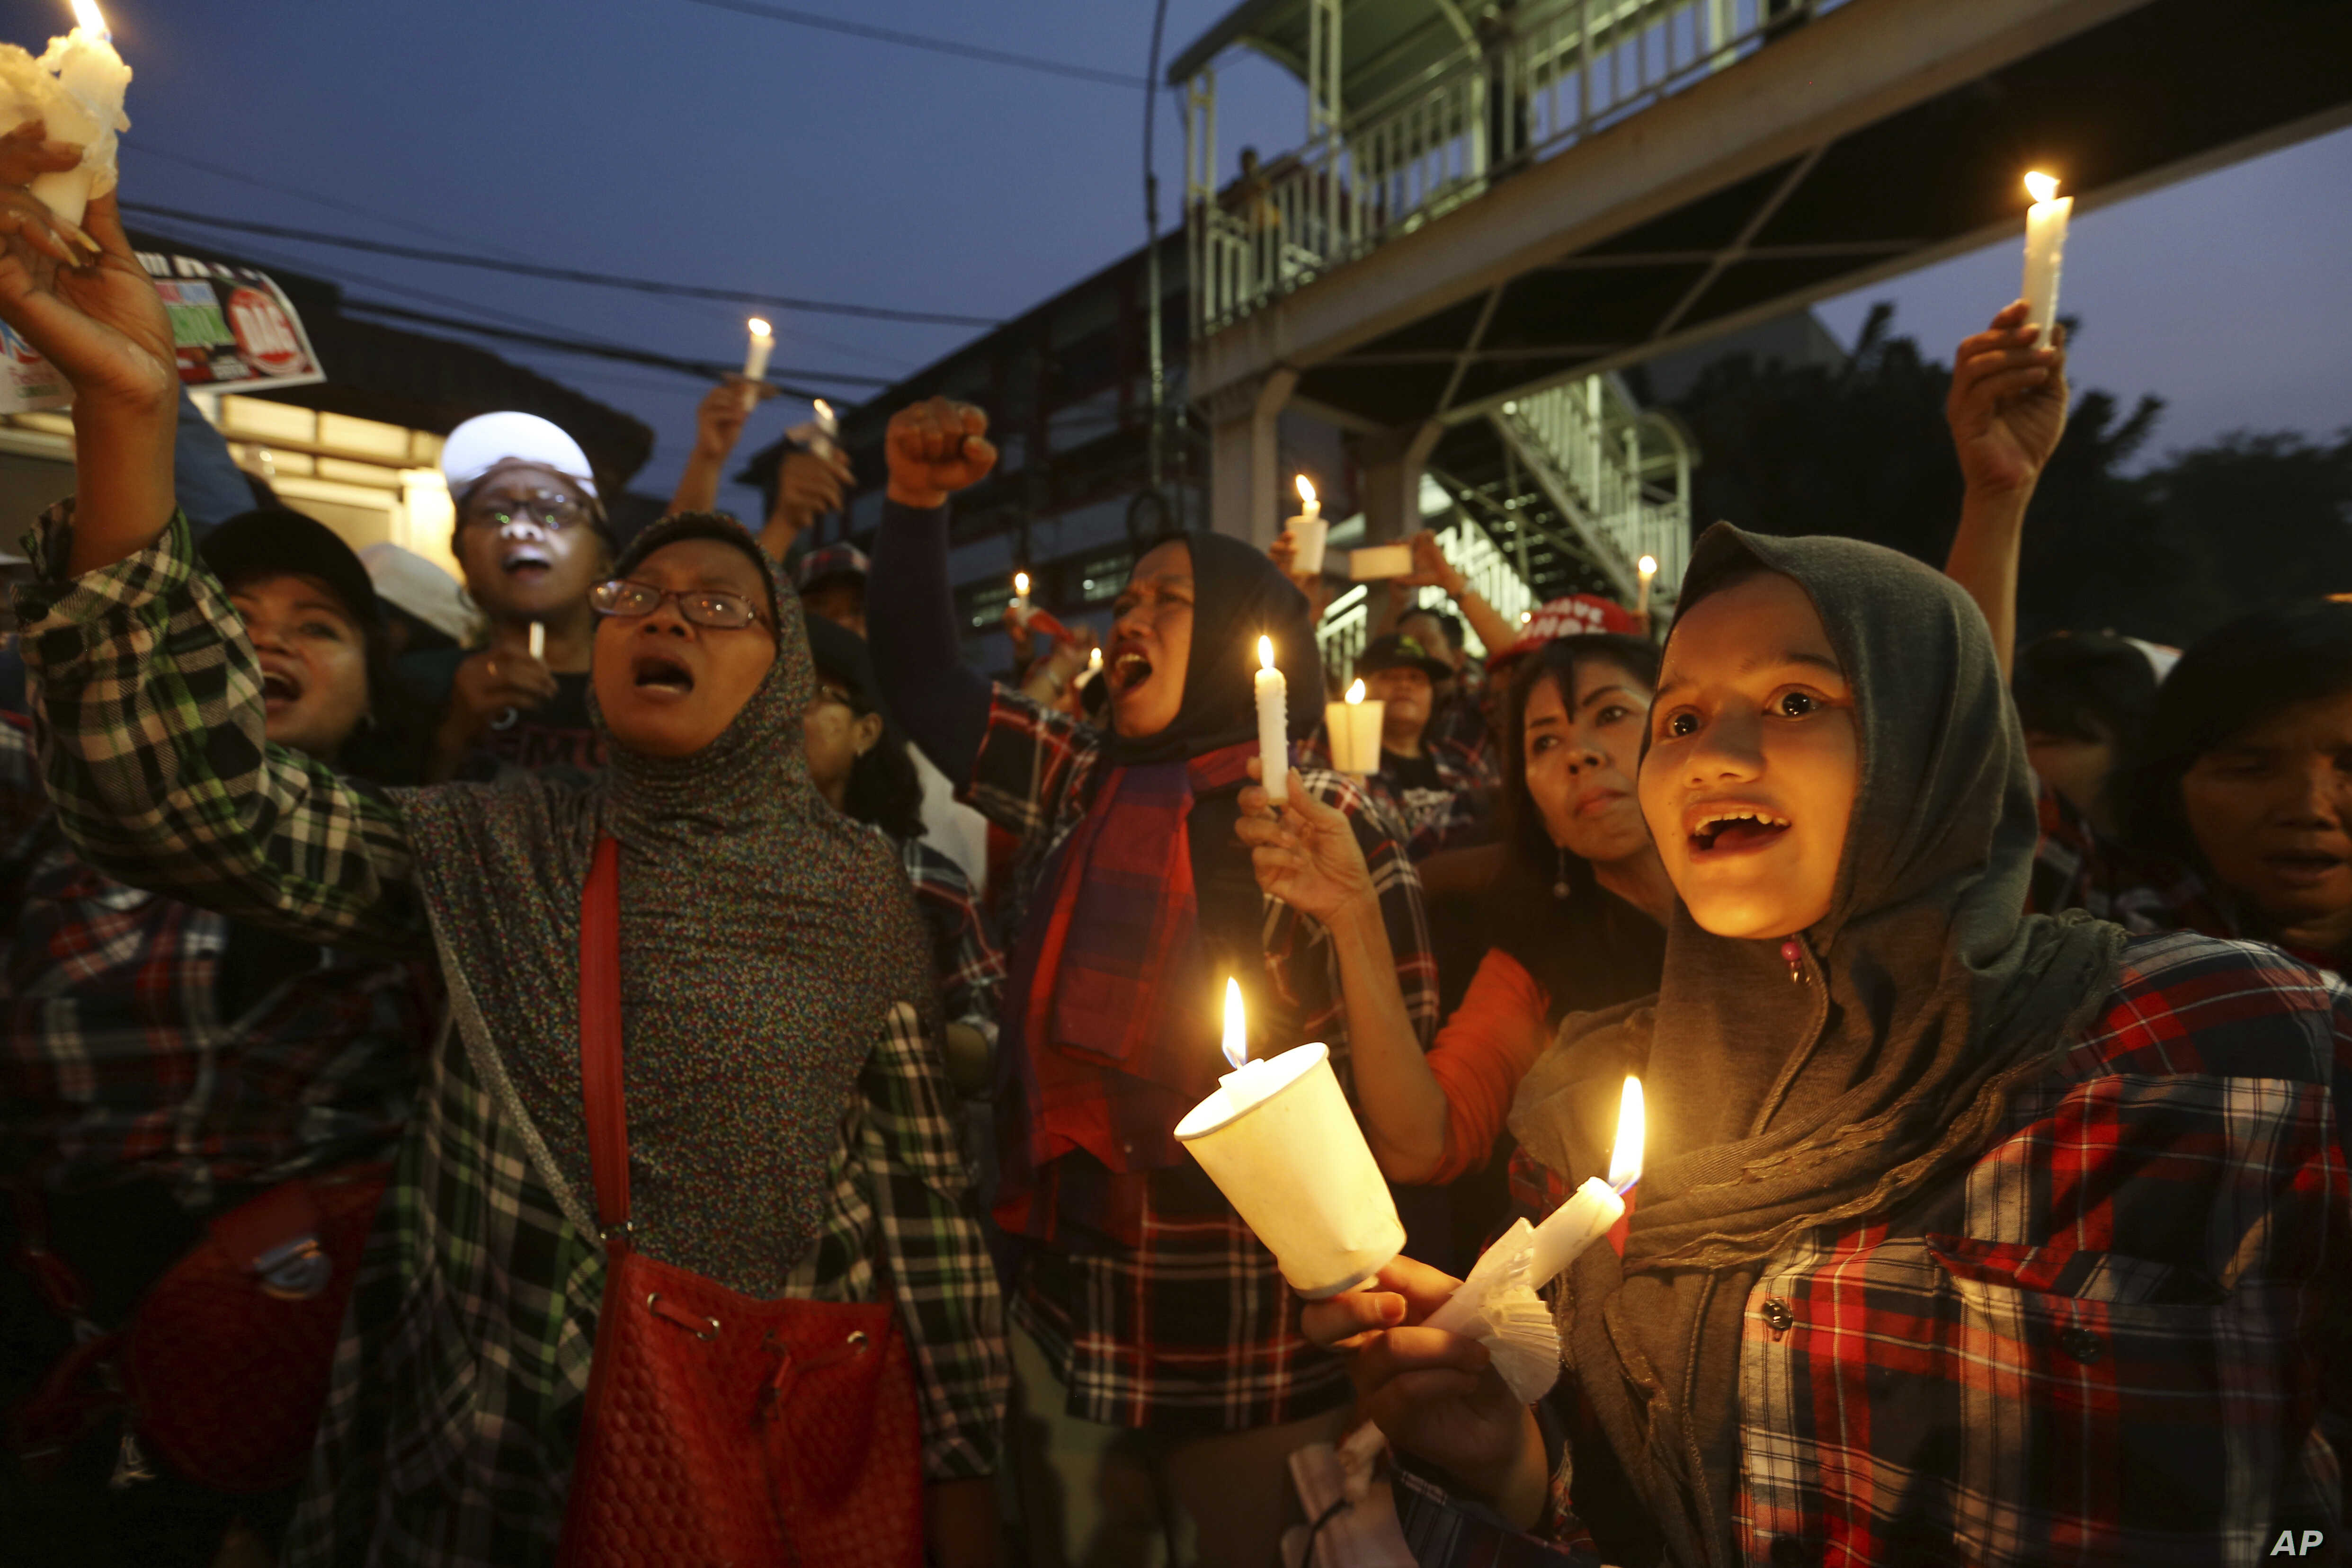 """Supporters of Jakarta Gov. Basuki """"Ahok"""" Tjahaja Purnama who is imprisoned for blaspheming Islam shout slogans during a protest outside the High Court in Jakarta, Indonesia, May 16, 2017. The imprisonment of the Christian politician has triggered an ..."""